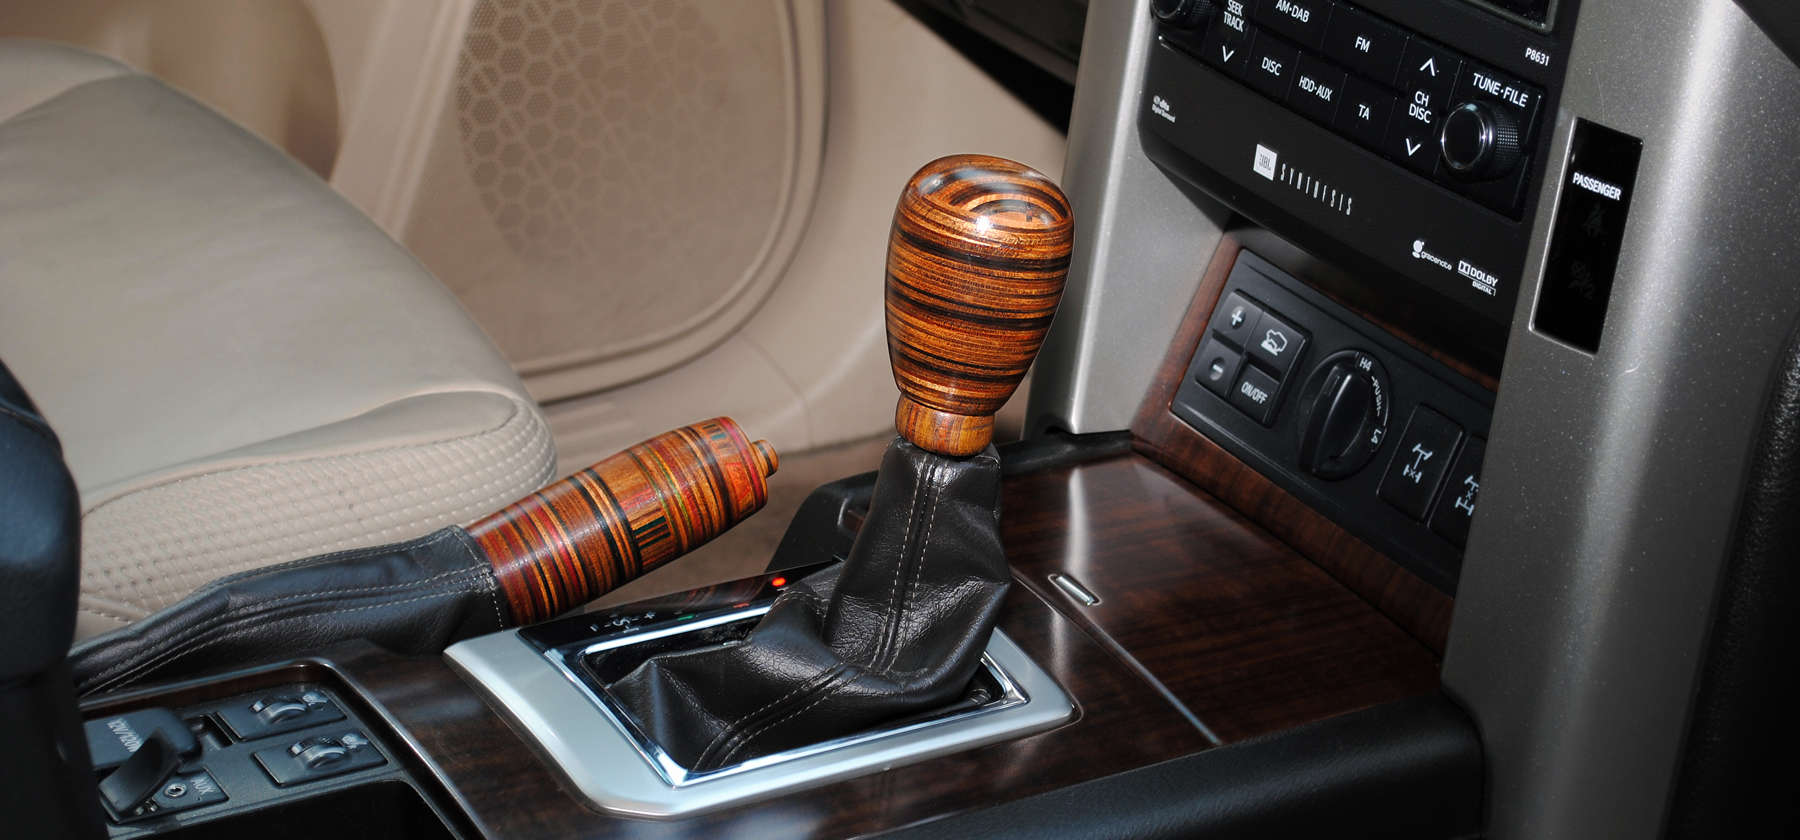 Land Cruiser Luxury shift knob & handbrake